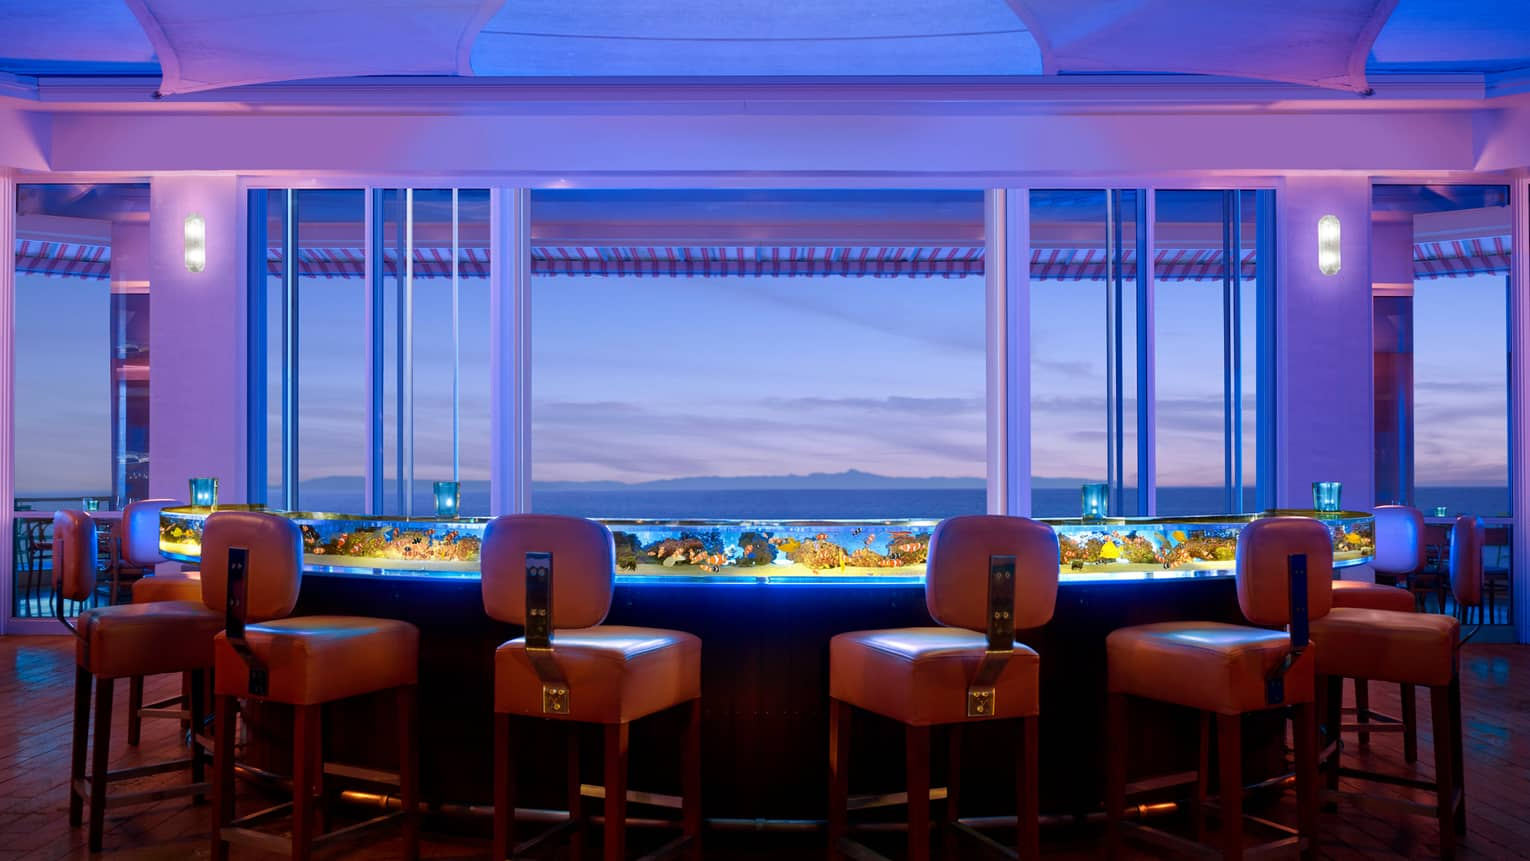 Orange stool around glowing Coral Reef glass bar filled with water, tropical fish